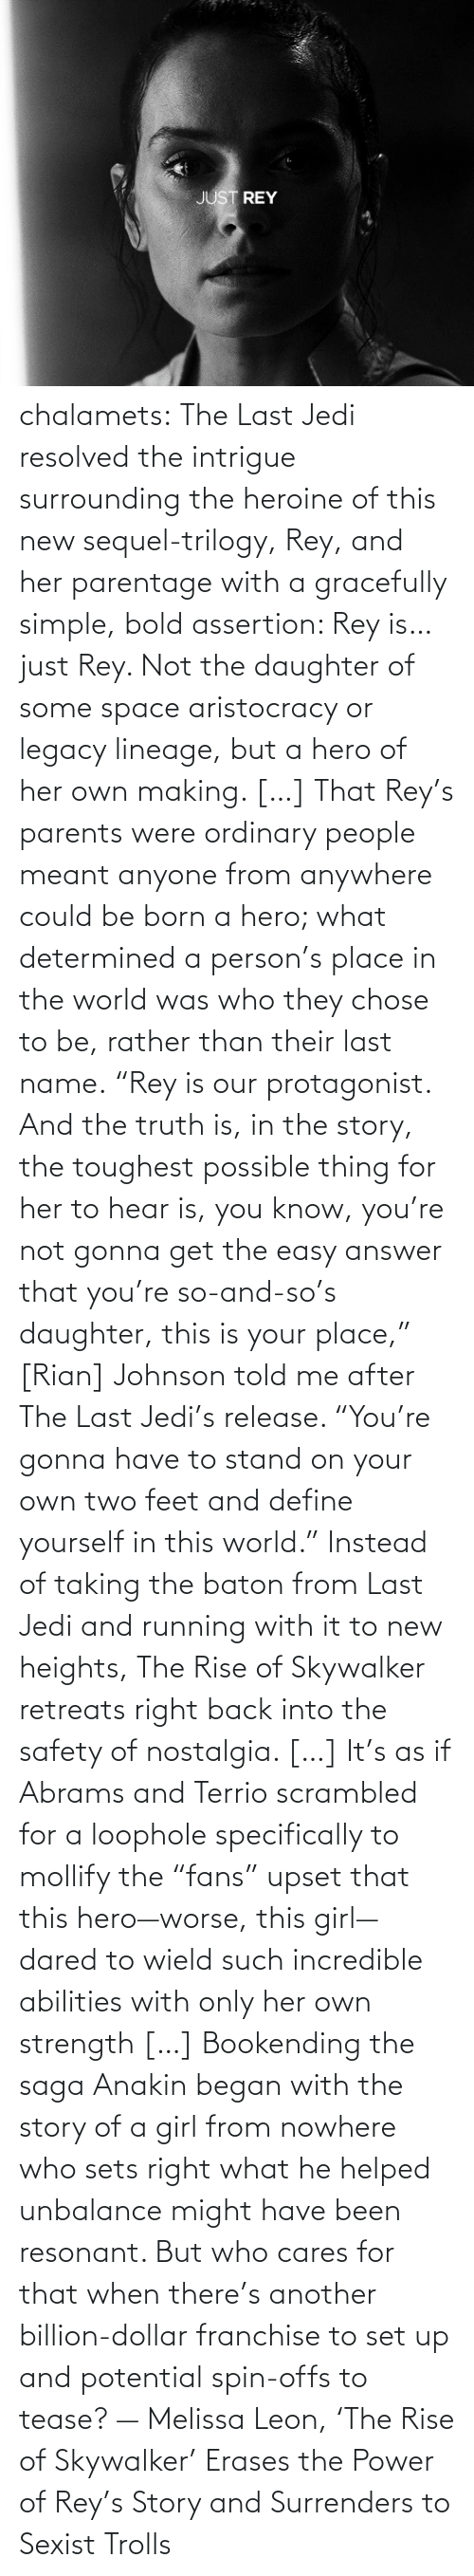 "Blog: chalamets:  The Last Jedi resolved the intrigue surrounding the heroine of this new sequel-trilogy, Rey, and her parentage with a gracefully simple, bold assertion: Rey is… just Rey. Not the daughter of some space aristocracy or legacy lineage, but a hero of her own making. […] That Rey's parents were ordinary people meant anyone from anywhere could be born a hero; what determined a person's place in the world was who they chose to be, rather than their last name. ""Rey is our protagonist. And the truth is, in the story, the toughest possible thing for her to hear is, you know, you're not gonna get the easy answer that you're so-and-so's daughter, this is your place,"" [Rian] Johnson told me after The Last Jedi's release. ""You're gonna have to stand on your own two feet and define yourself in this world."" Instead of taking the baton from Last Jedi and running with it to new heights, The Rise of Skywalker retreats right back into the safety of nostalgia. […] It's as if Abrams and Terrio scrambled for a loophole specifically to mollify the ""fans"" upset that this hero—worse, this girl—dared to wield such incredible abilities with only her own strength […] Bookending the saga Anakin began with the story of a girl from nowhere who sets right what he helped unbalance might have been resonant. But who cares for that when there's another billion-dollar franchise to set up and potential spin-offs to tease? — Melissa Leon, 'The Rise of Skywalker' Erases the Power of Rey's Story and Surrenders to Sexist Trolls"